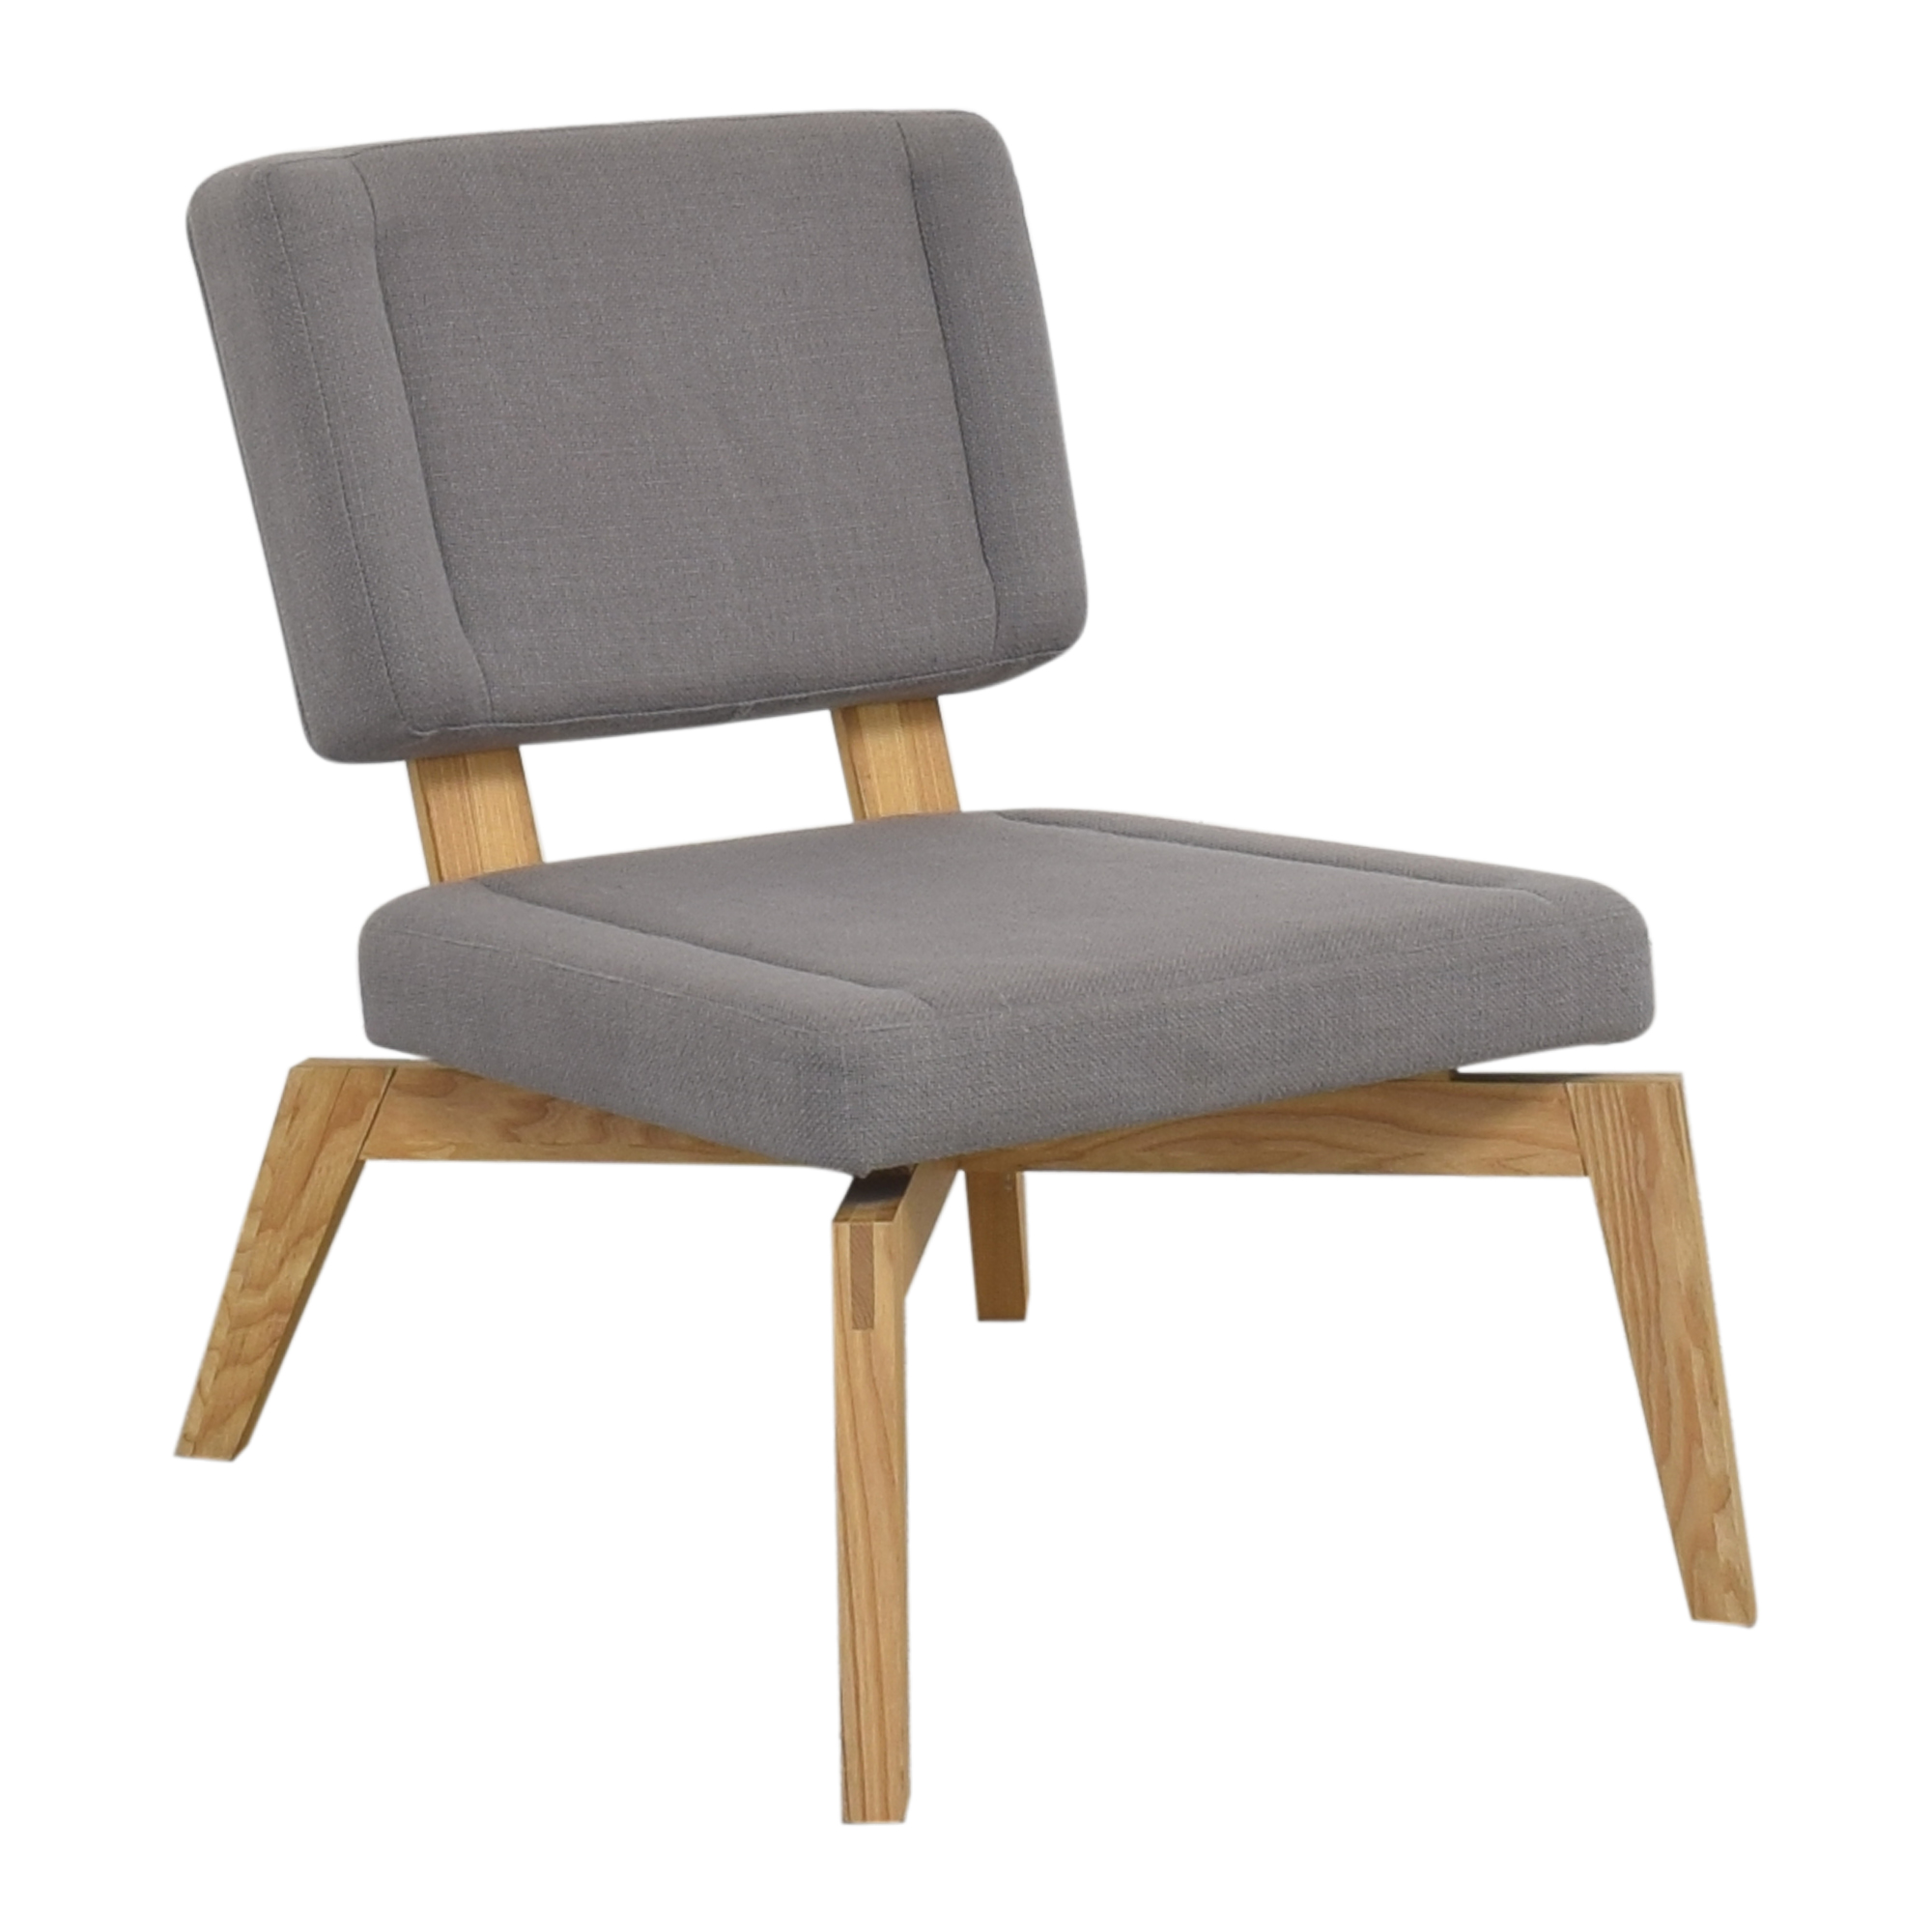 buy CB2 Lounge Chair with Ottoman CB2